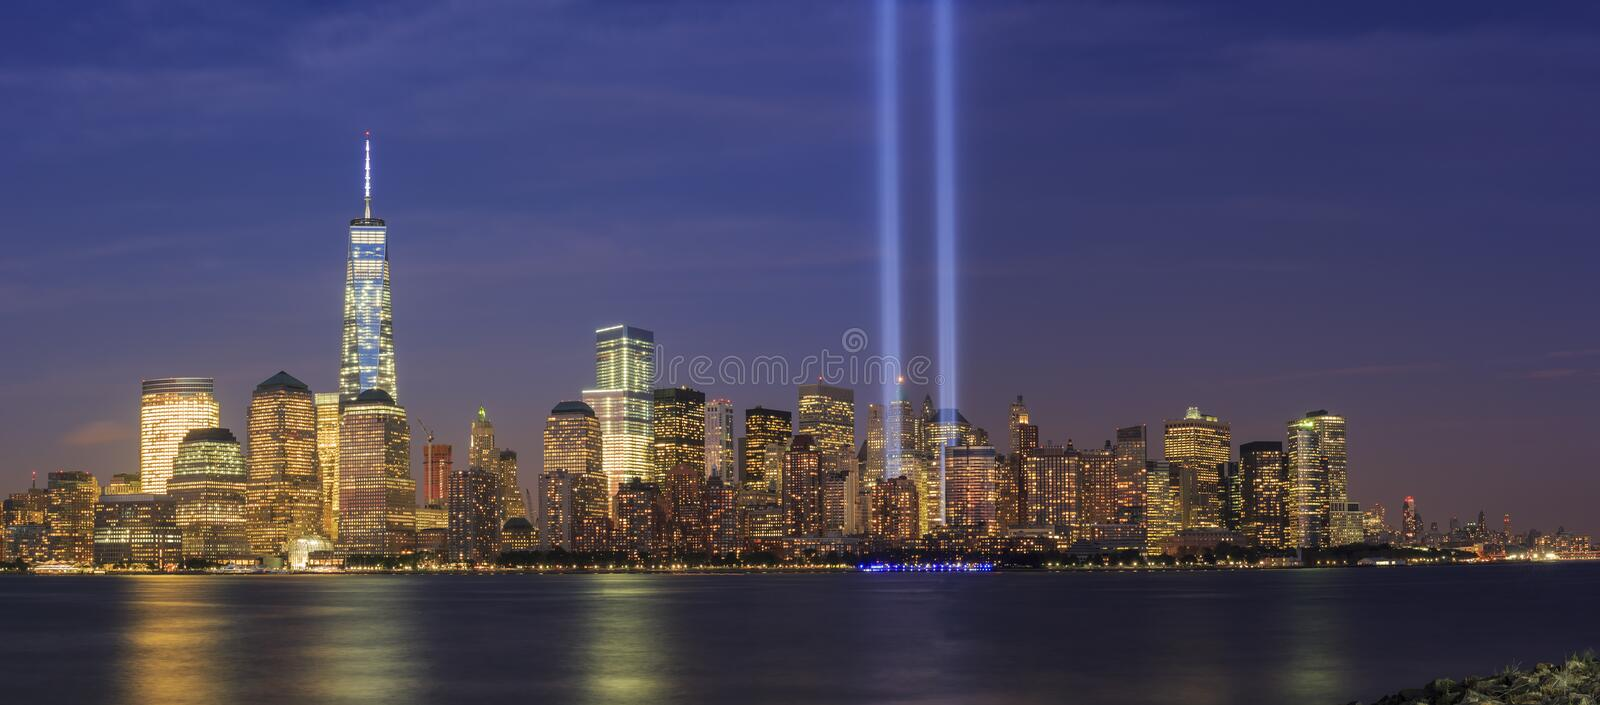 911 Memorial light and New York City skyline. At night royalty free stock images